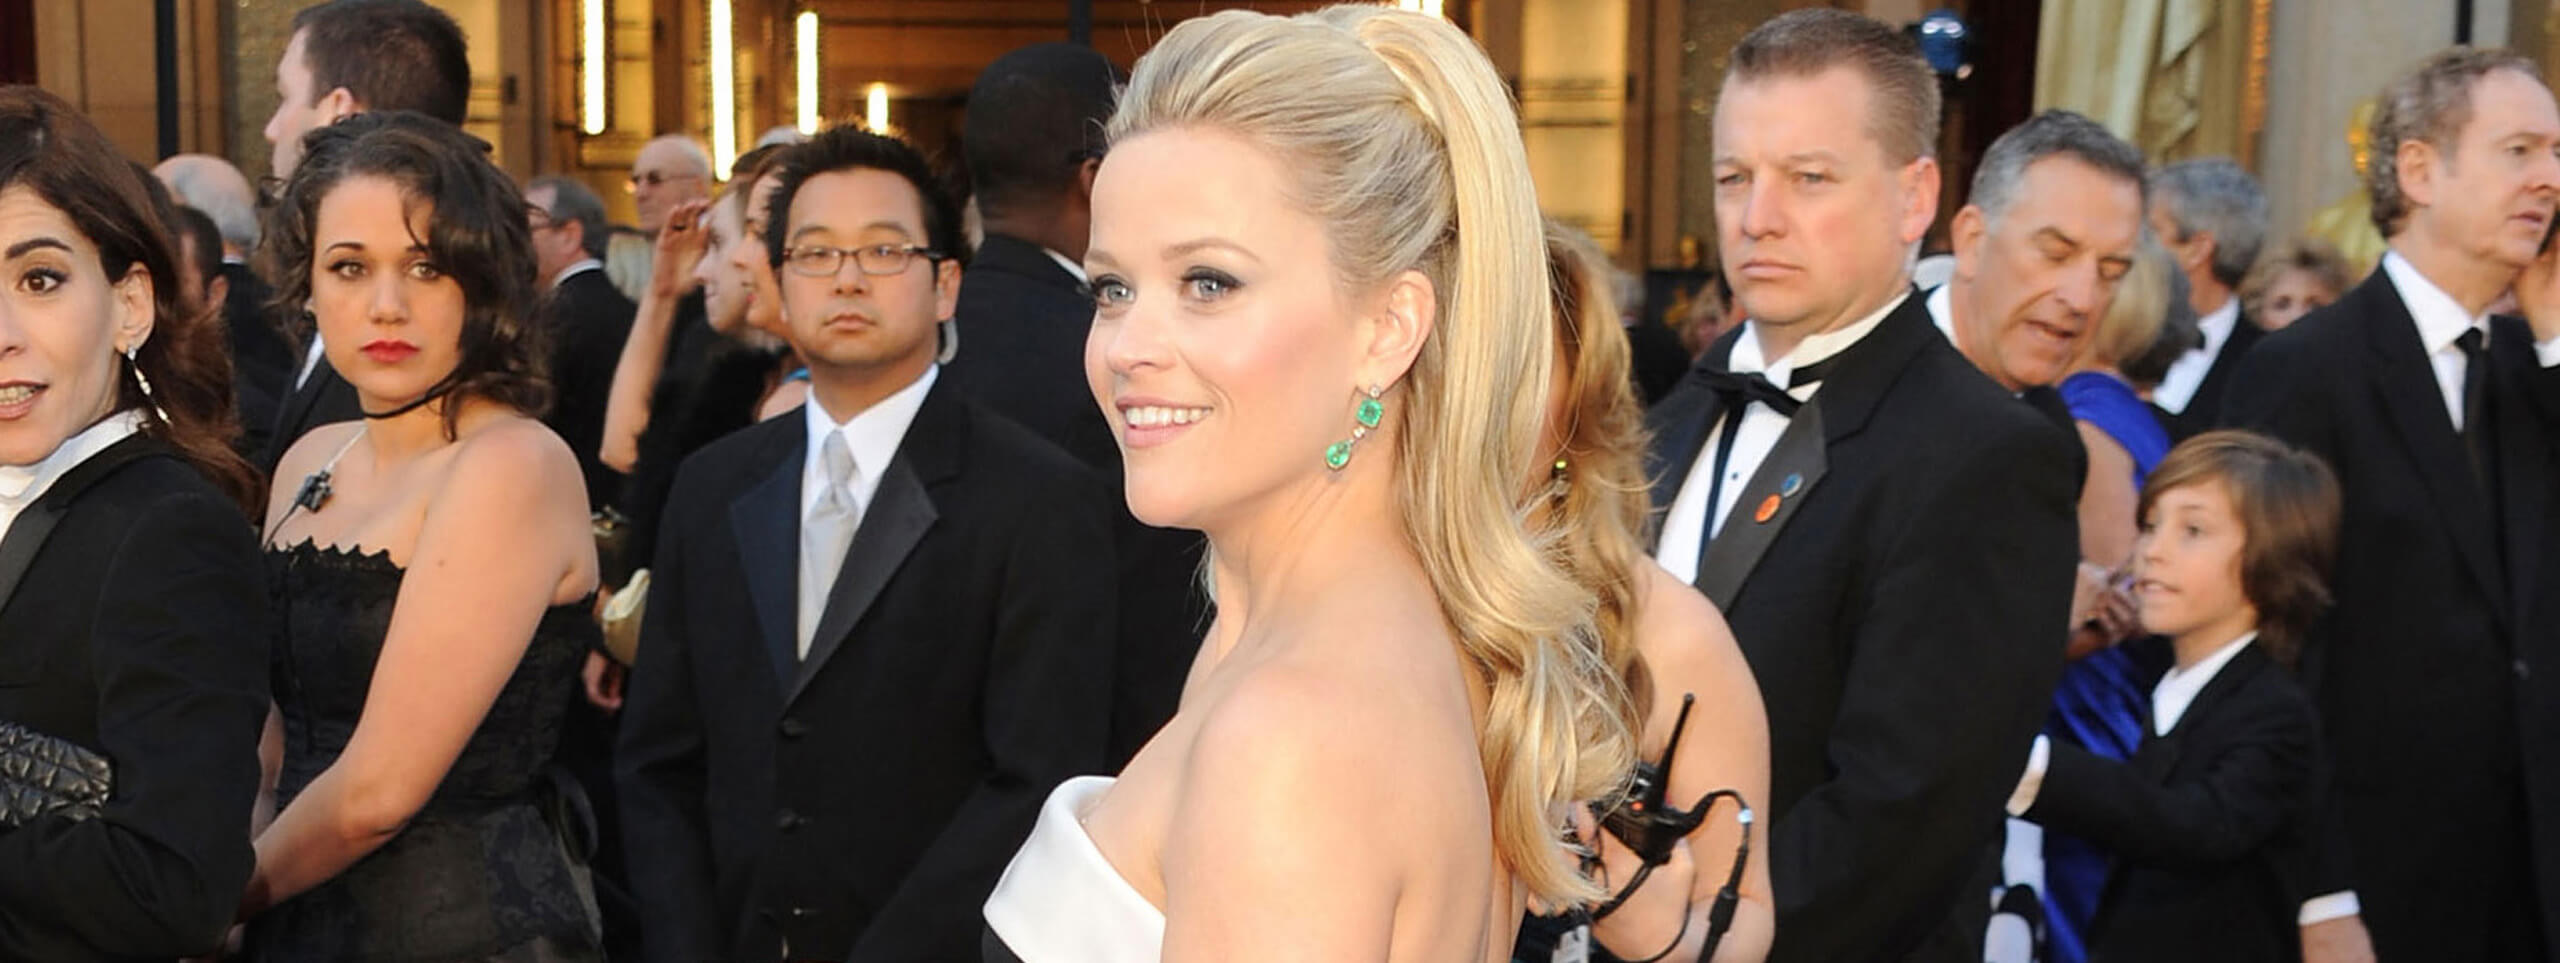 hairstyle-pictures-reese-witherspoon